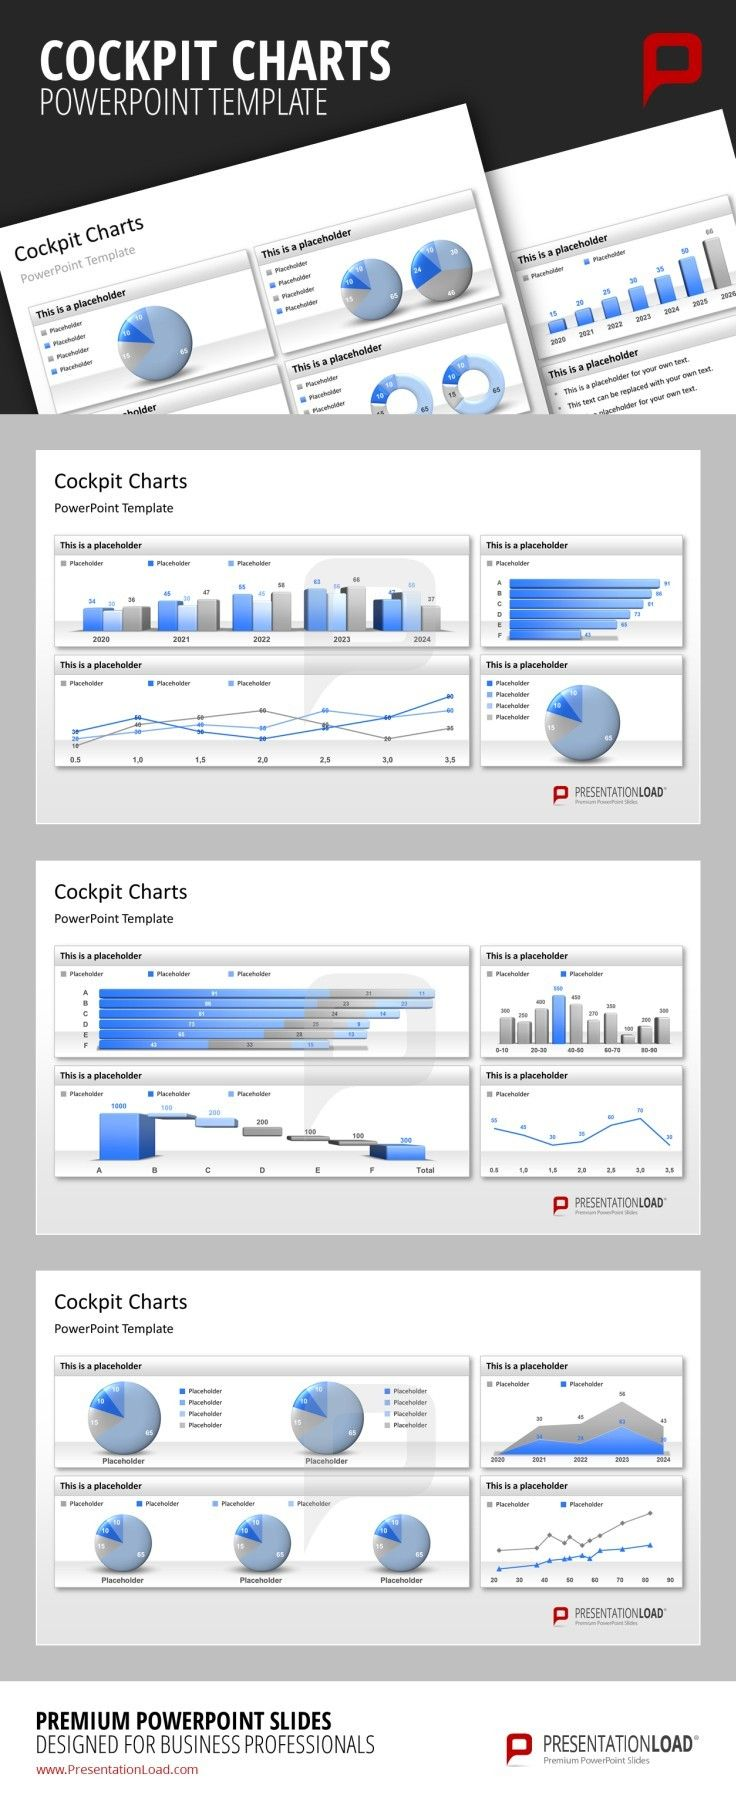 Cockpit Charts Powerpoint Templates Use Different Combinations Of